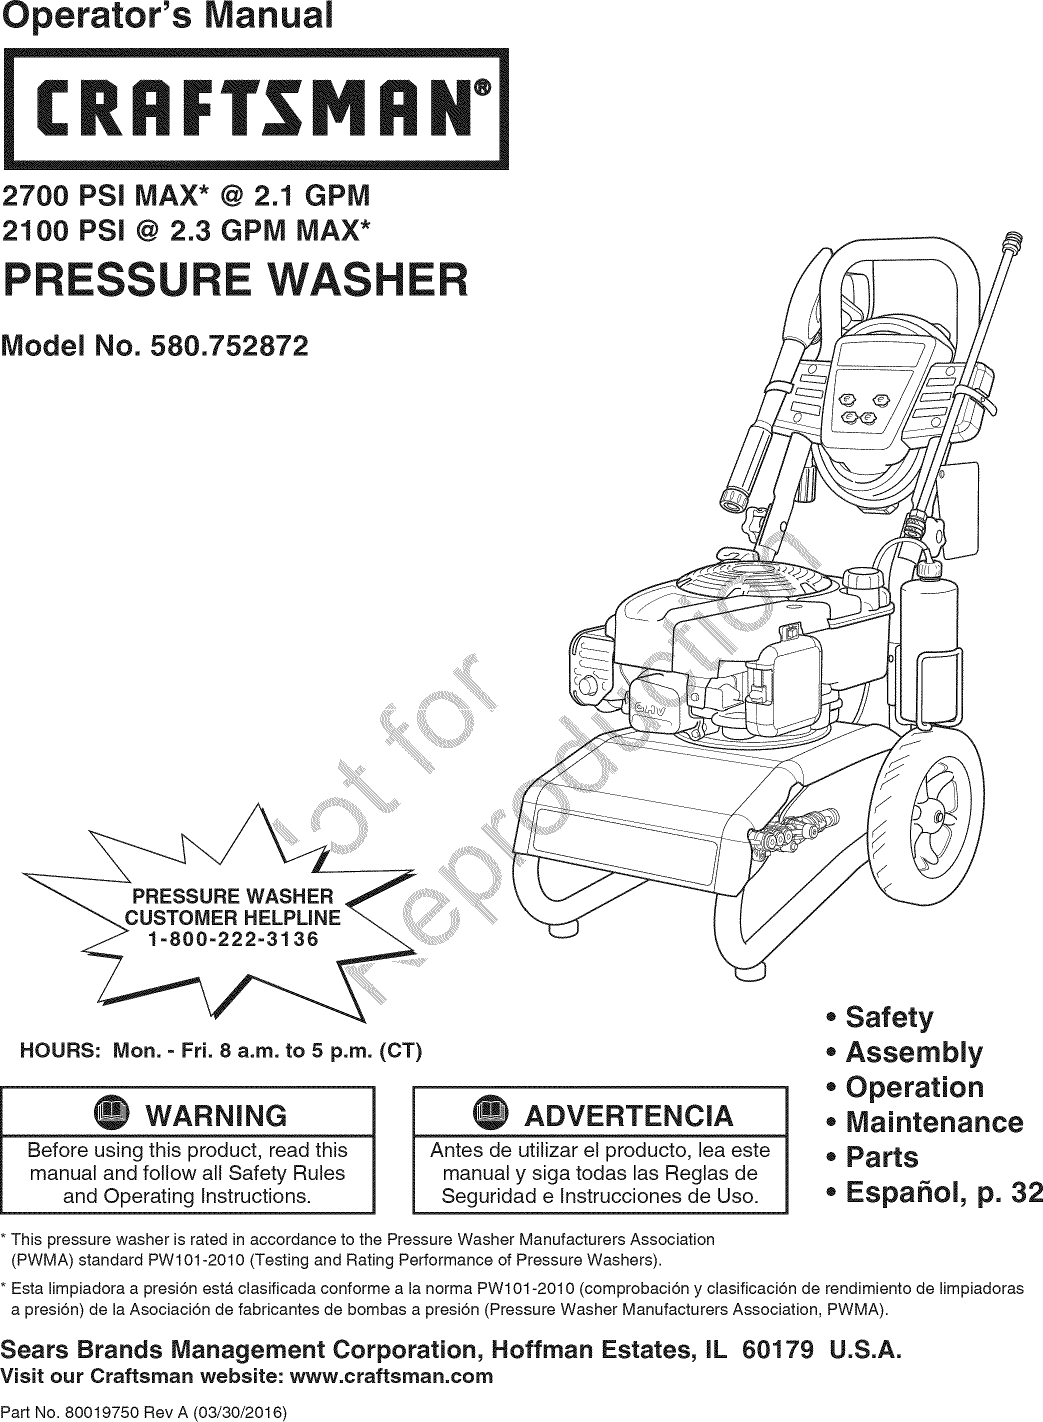 craftsman 580752872 1603549l user manual power washer manuals and guides